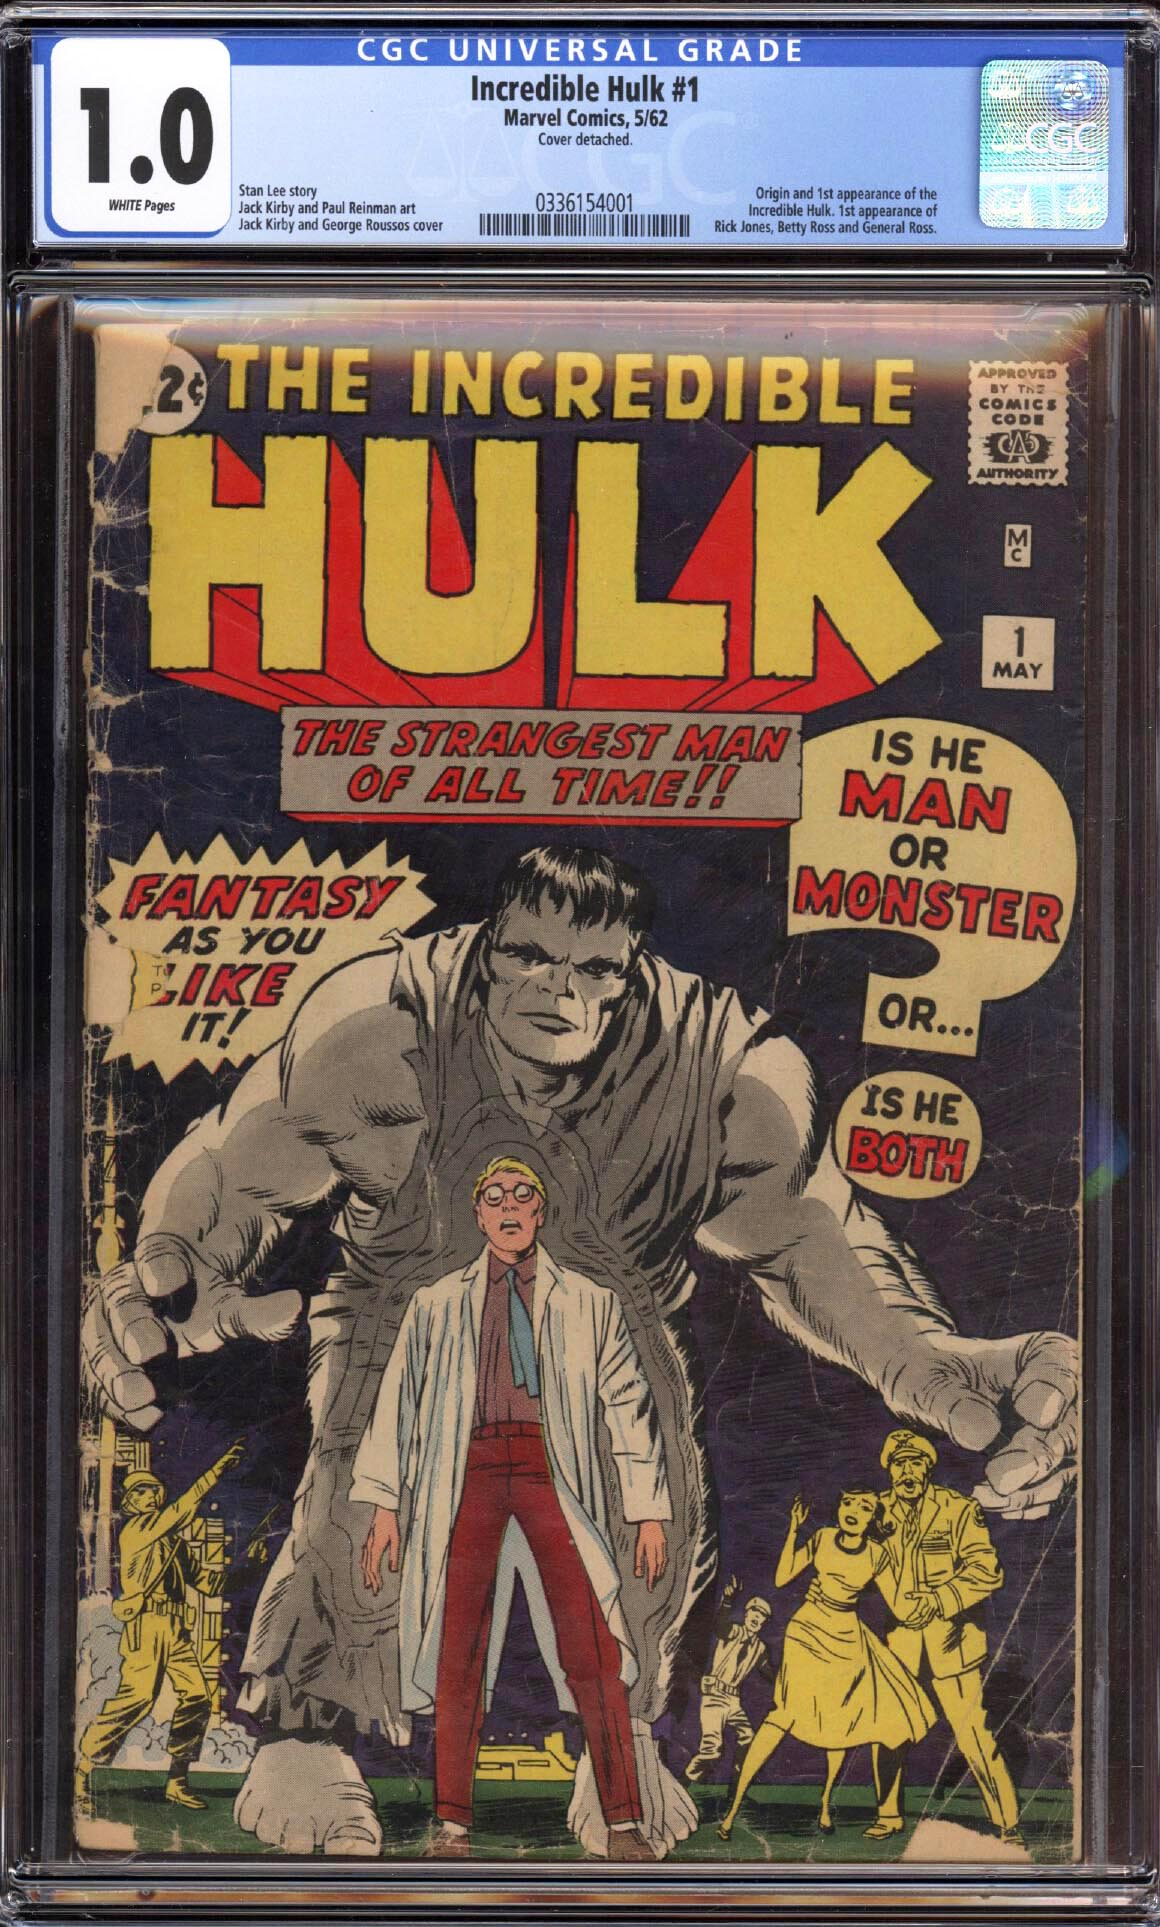 Bunky Brothers Comics, Comic Books, Toys and Pop Culture